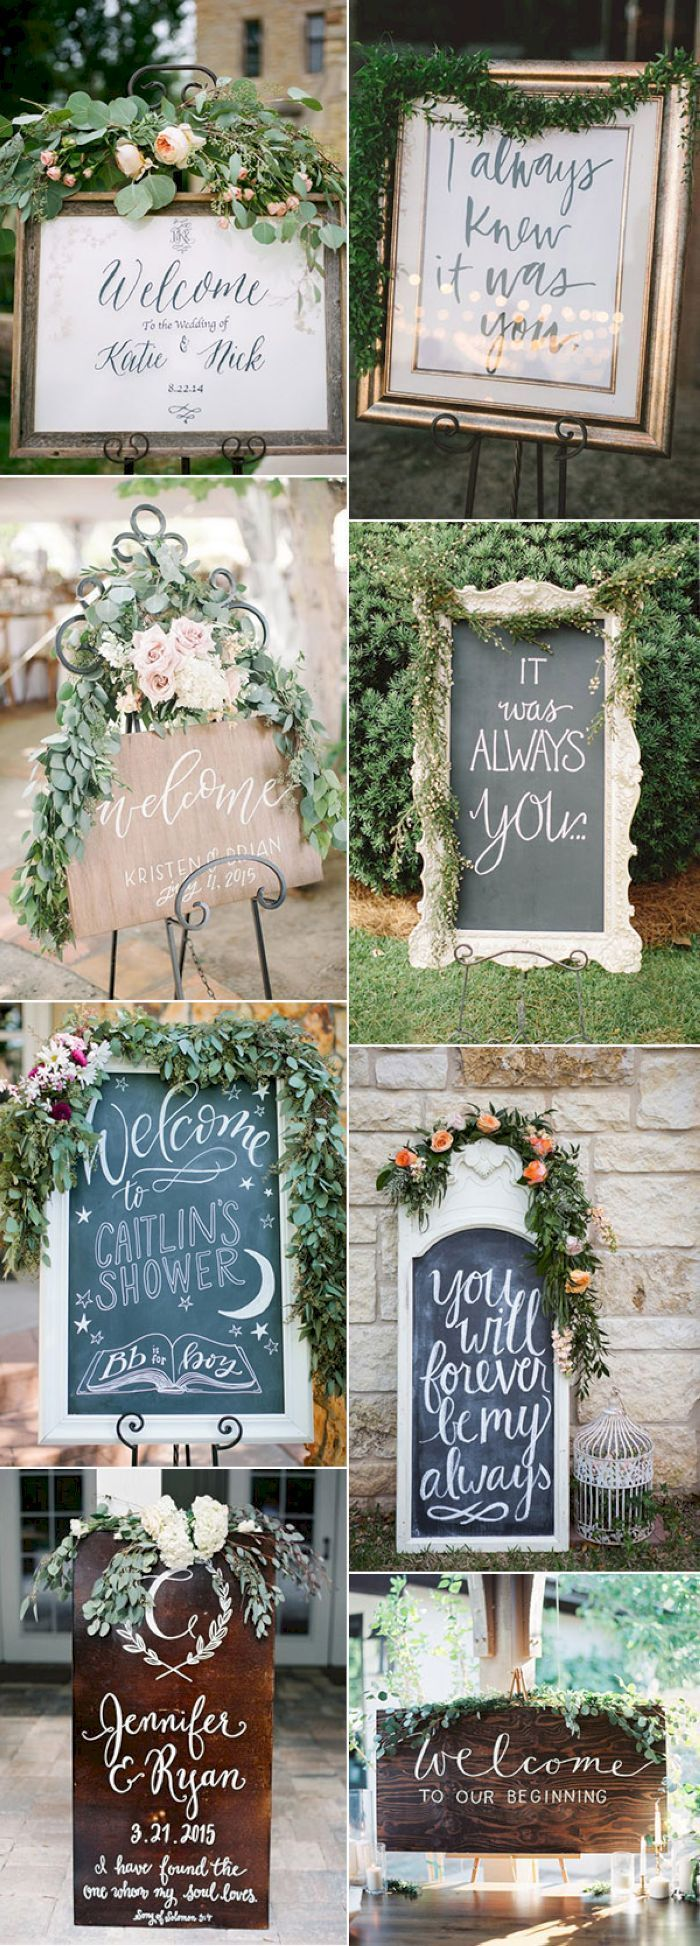 Best 25 outdoor wedding tables ideas on pinterest for Outdoor wedding decorations on a budget